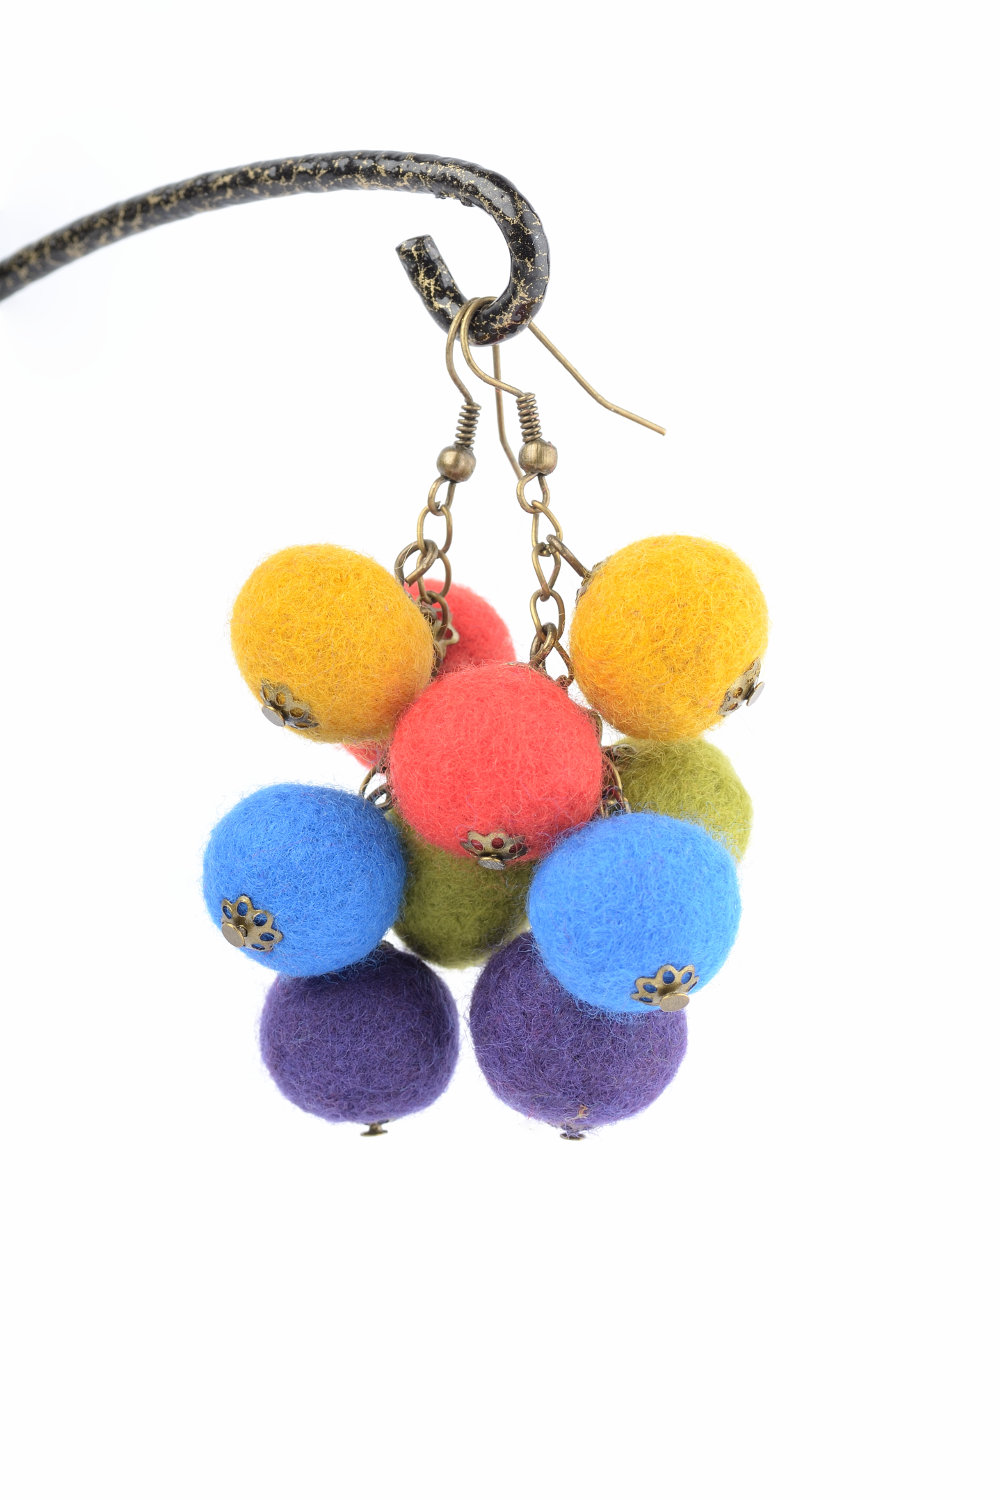 Felt Ball Earrings With Cluster Or Bunch Design